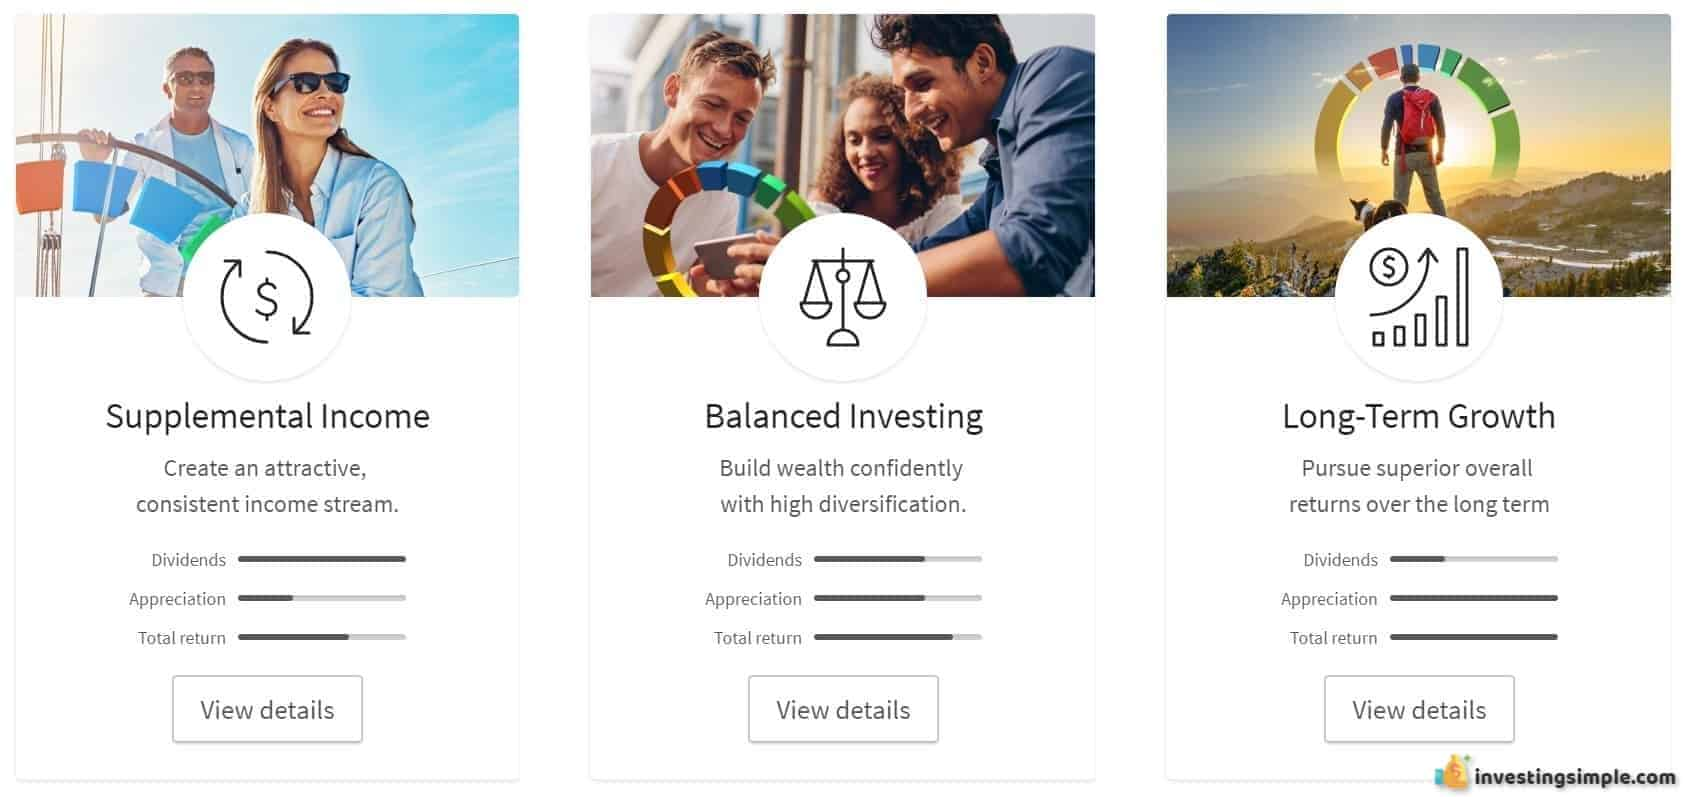 Fundrise investment options and portfolios include the starter portfolio, the balanced investing portfolio, the growth portfolio, and the income portfolio. Each of these fundrise portfolios have different investment goals.